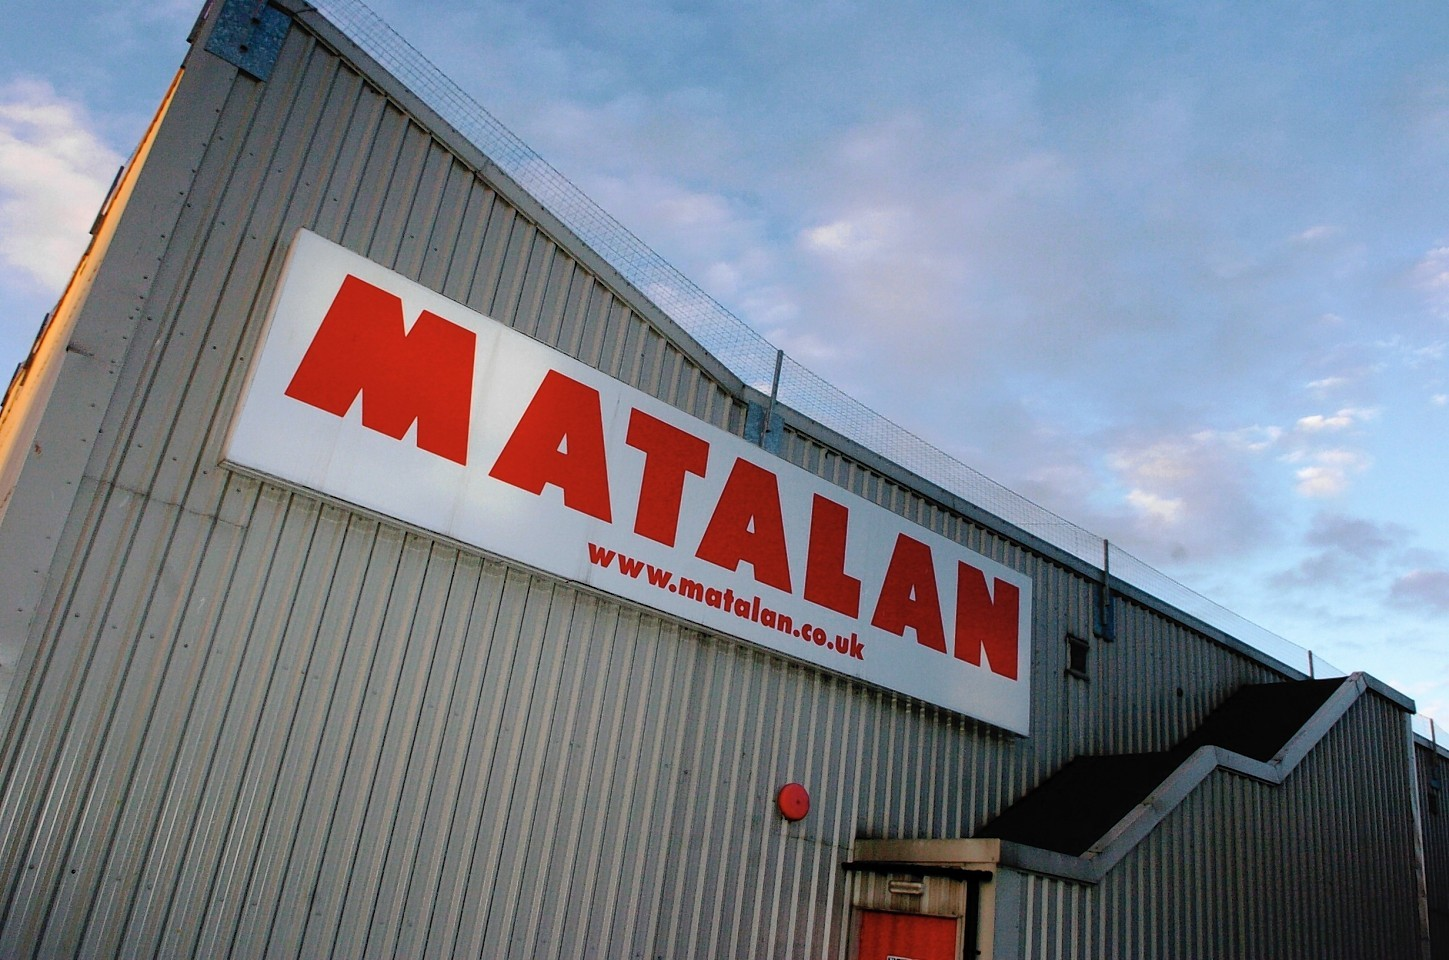 Aberdeen Matalan raised the money for Maggie's